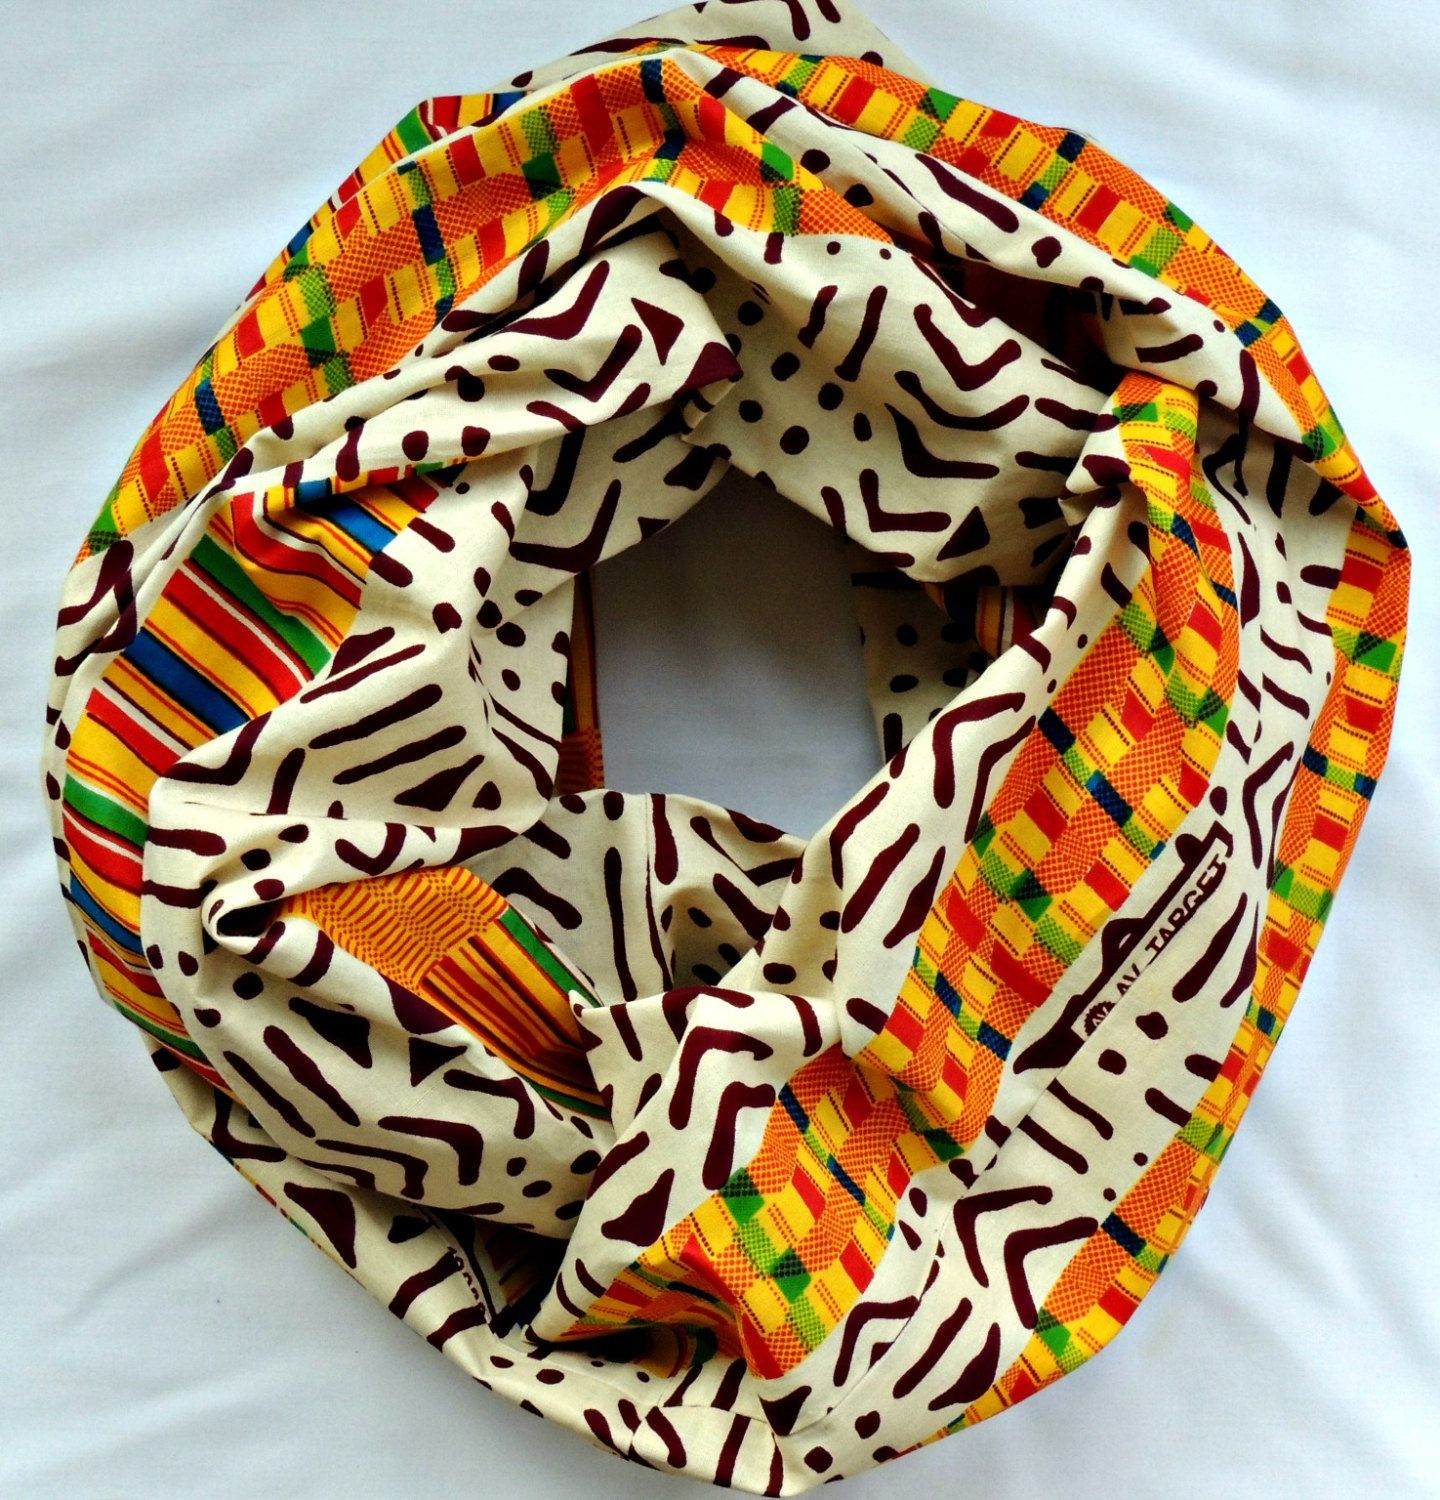 Tribal Print Kente Cloth Cotton Infinity Scarf by SewSophistikated on Etsy